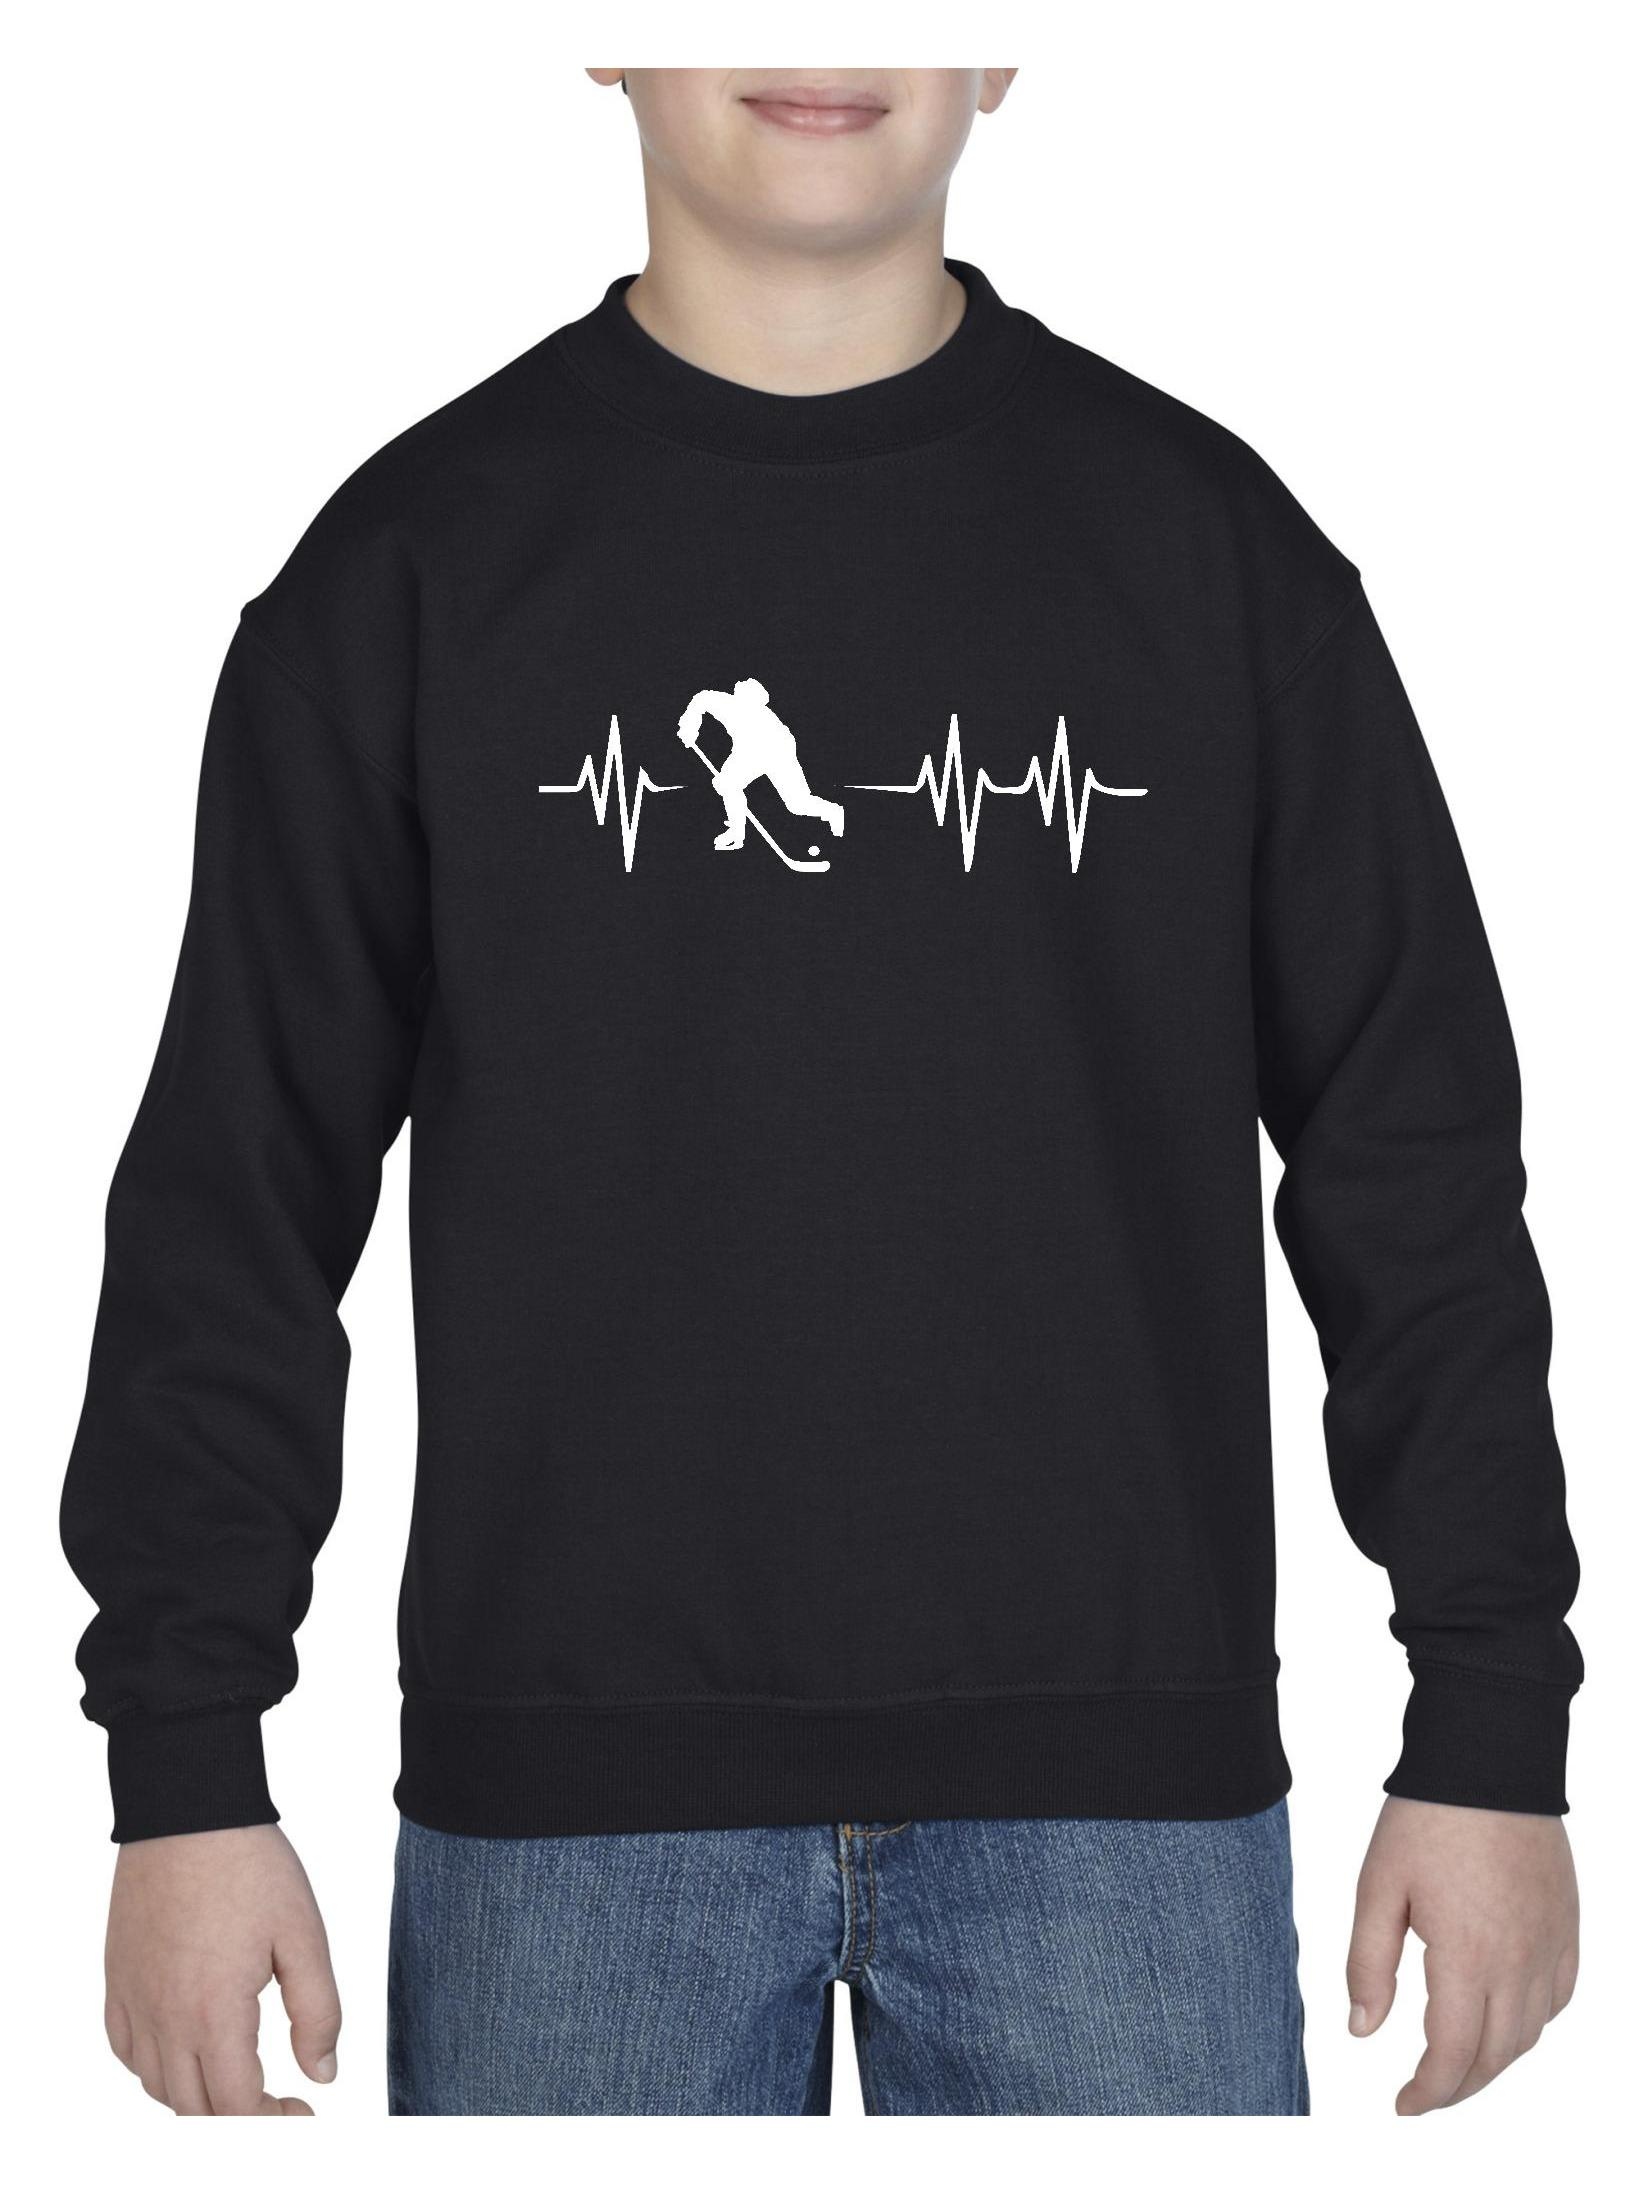 Hockey Unisex Youth Crewneck Sweatshirt